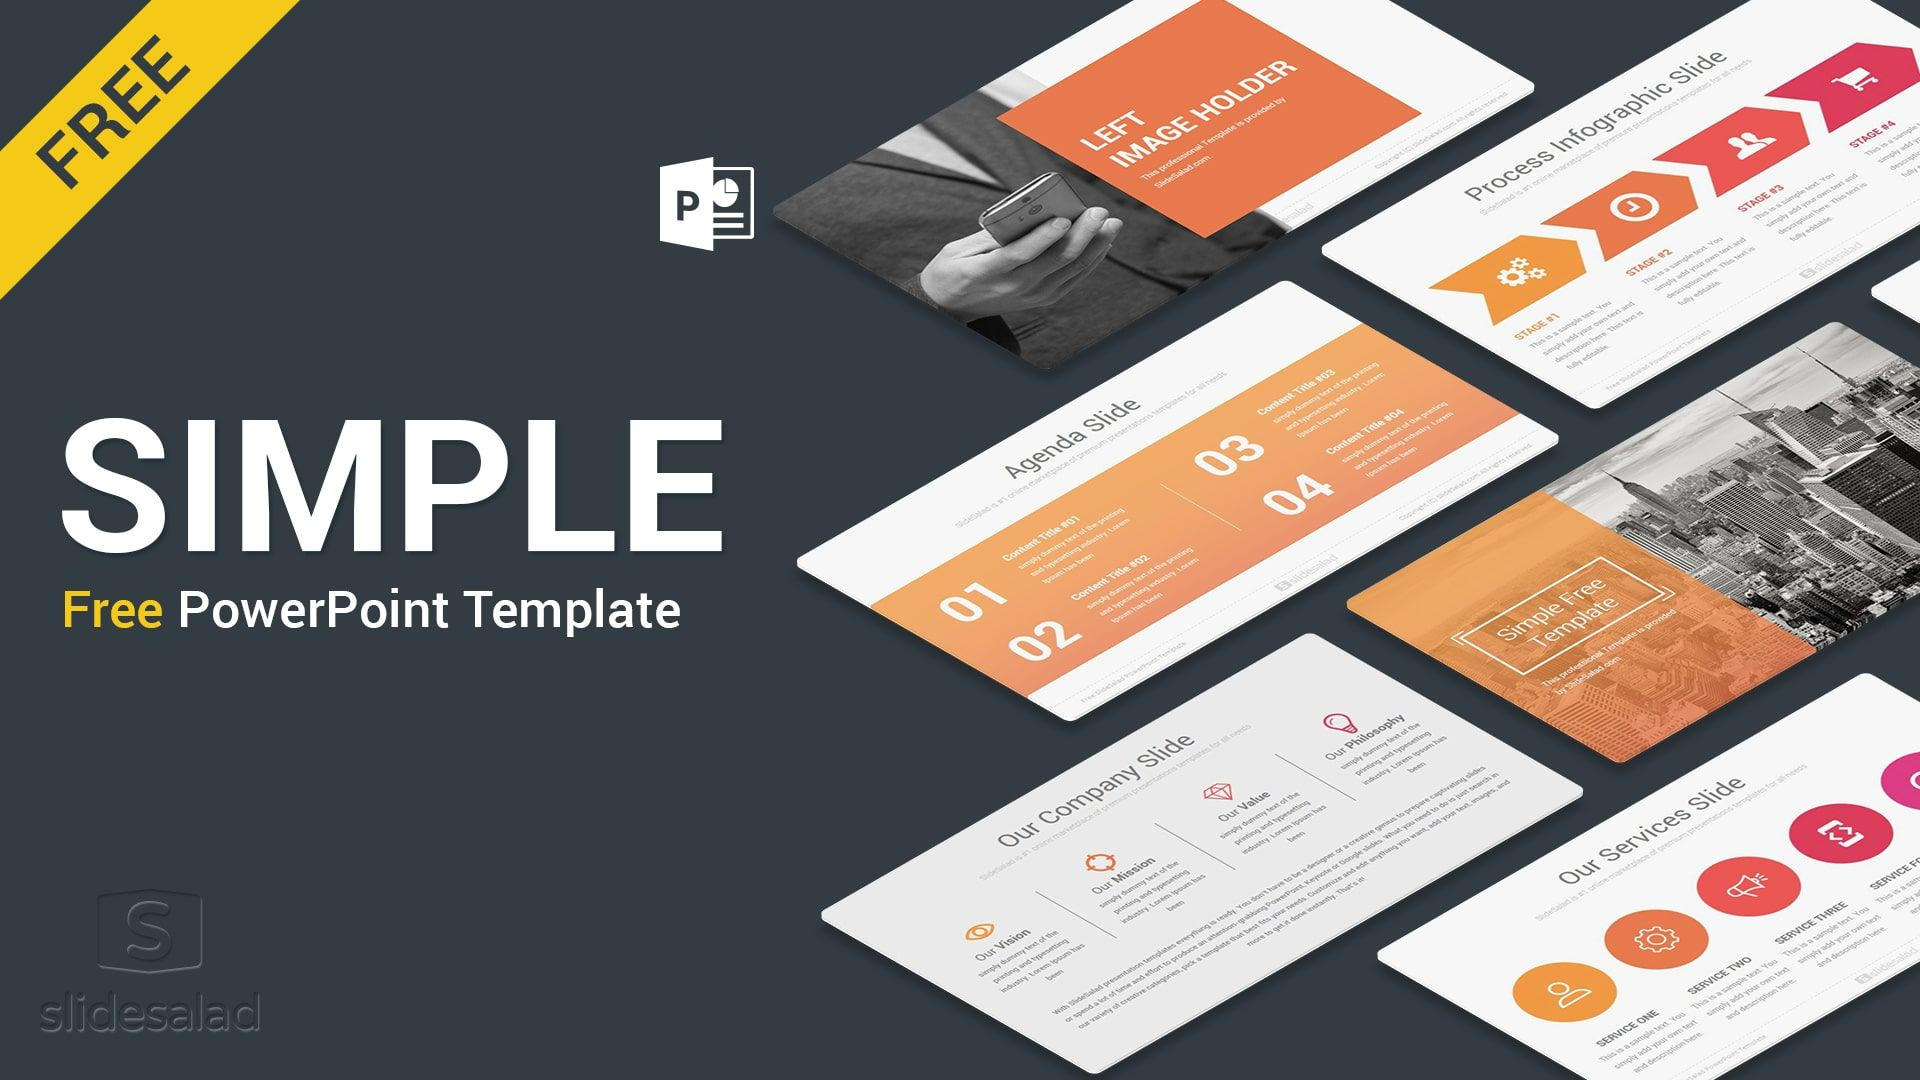 Best Free Presentation Templates Professional Designs 2019 With Regard To Bus Free Powerpoint Presentations Powerpoint Template Free Presentation Template Free